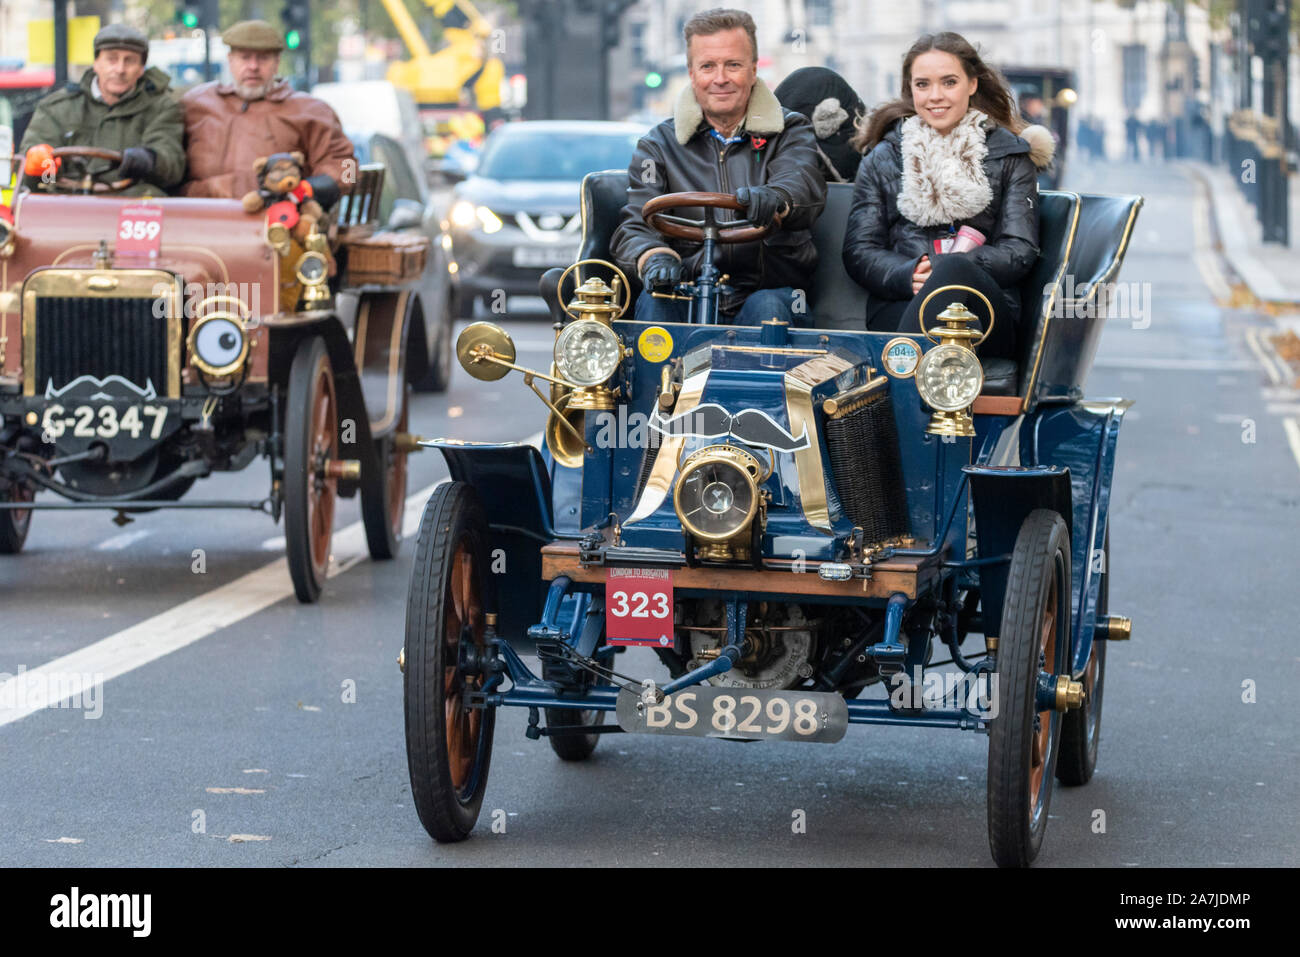 the-london-to-brighton-veteran-car-run-is-the-longest-running-motoring-event-in-the-world-with-the-first-taking-place-in-1896-organised-to-celebrate-the-passing-of-the-law-that-enabled-light-locomotives-to-travel-at-speeds-greater-than-4mph-and-removed-the-requirement-for-a-man-walking-in-front-with-a-flag-cars-entering-the-event-must-have-been-built-before-1905-setting-off-from-hyde-park-at-dawn-the-vehicles-travelled-through-london-before-heading-south-car-323-1904c-renault-2A7JDMP.jpg